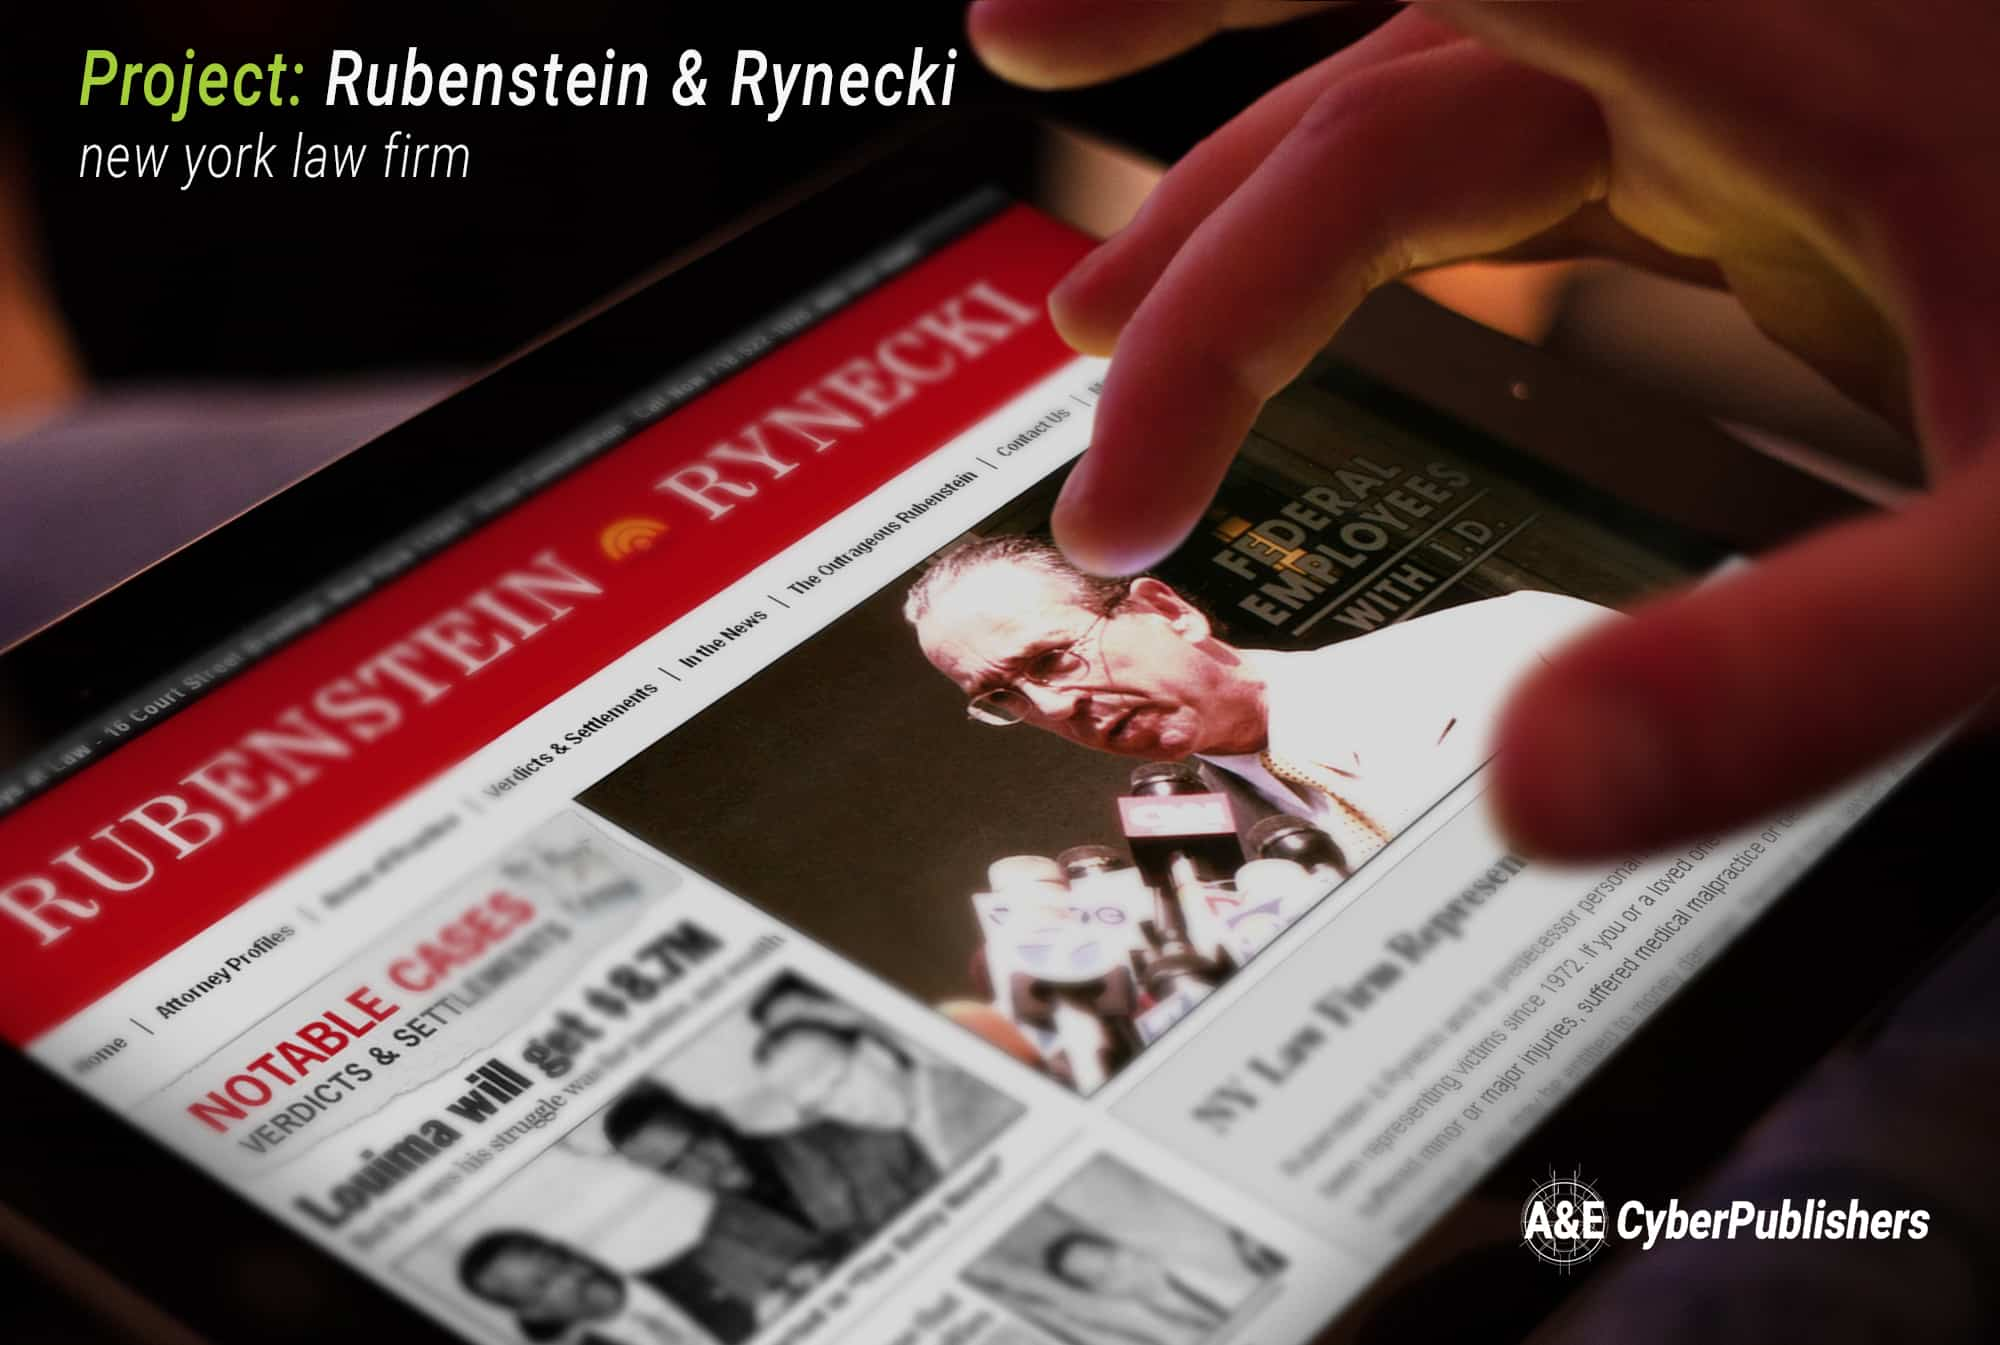 Rubenstein & Rynecki Website Design